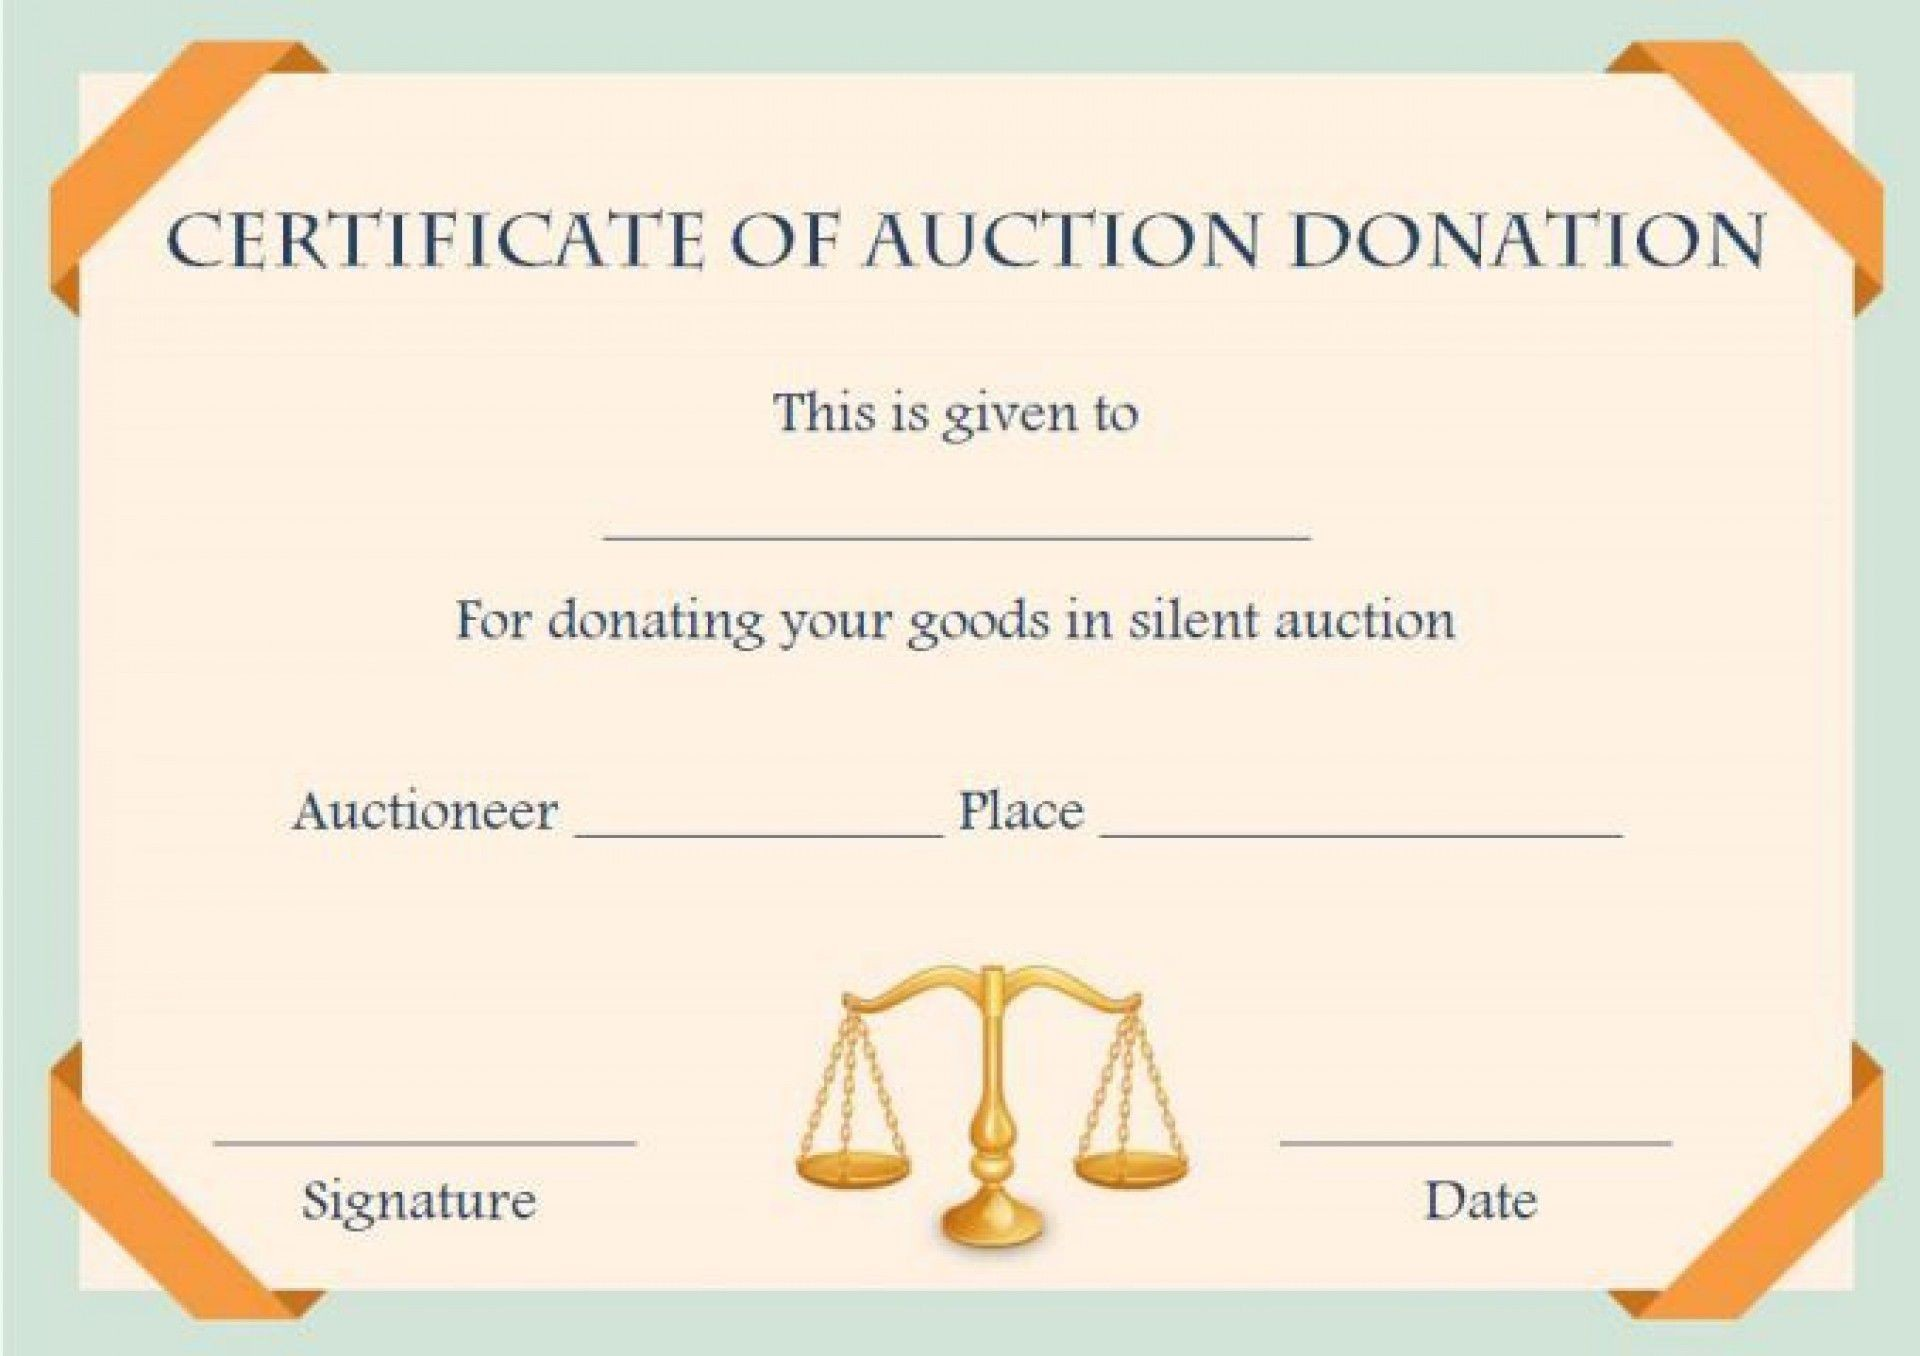 008 Awful Free Silent Auction Gift Certificate Template Photo 1920